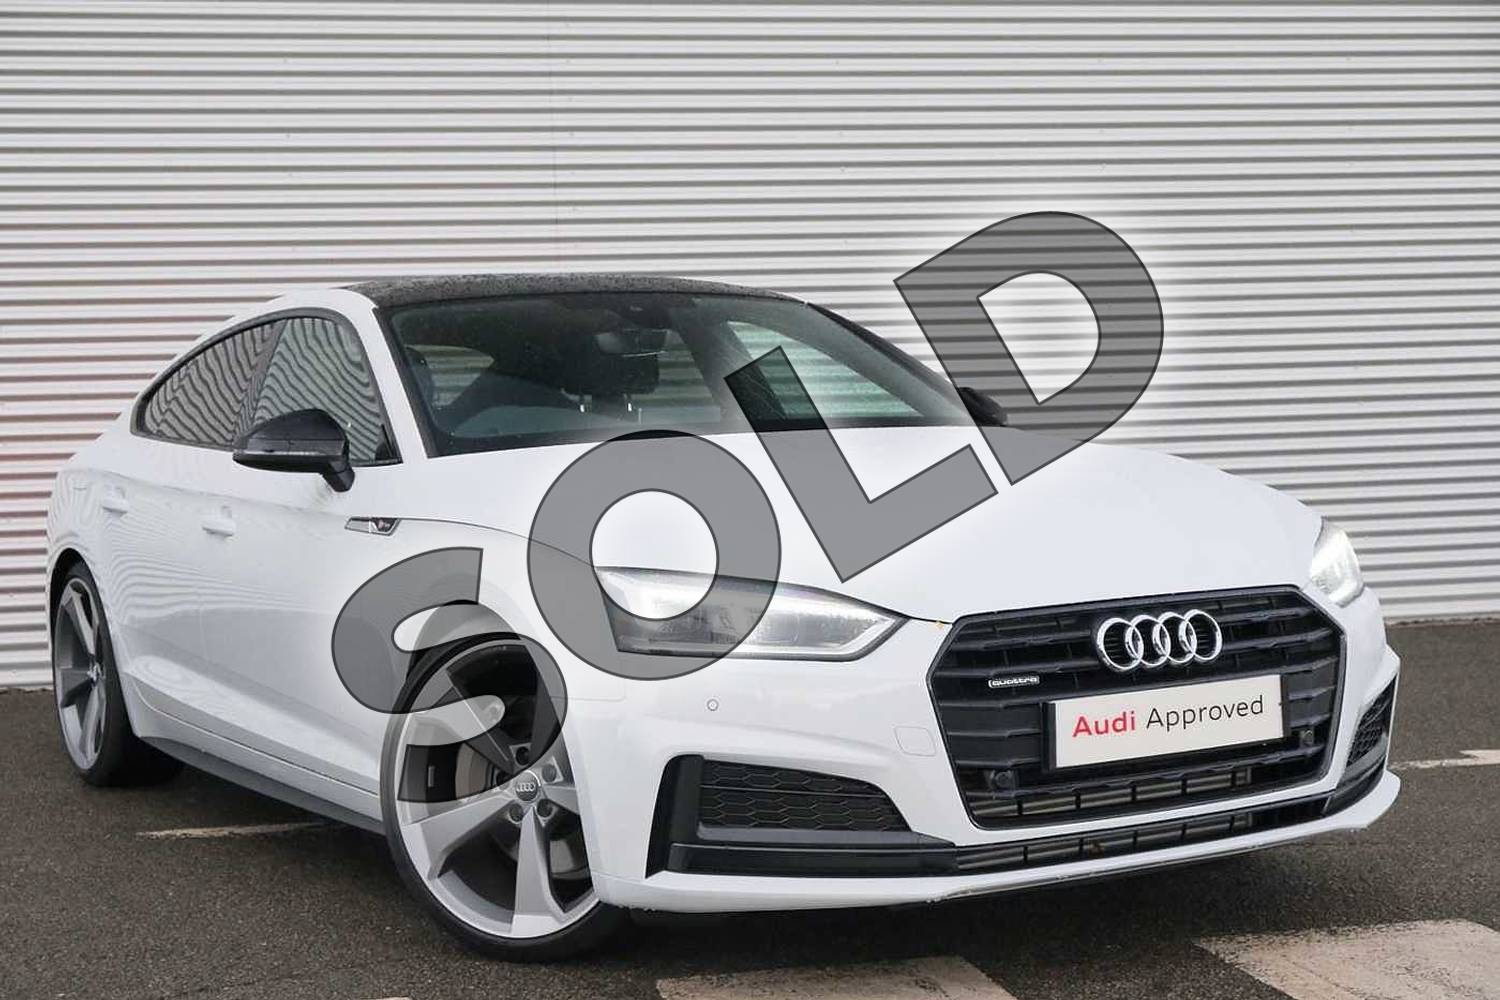 Audi A5 45 Tfsi Quattro Black Edition 5dr S Tronic For Sale At Coventry Audi Ref 021 U167878